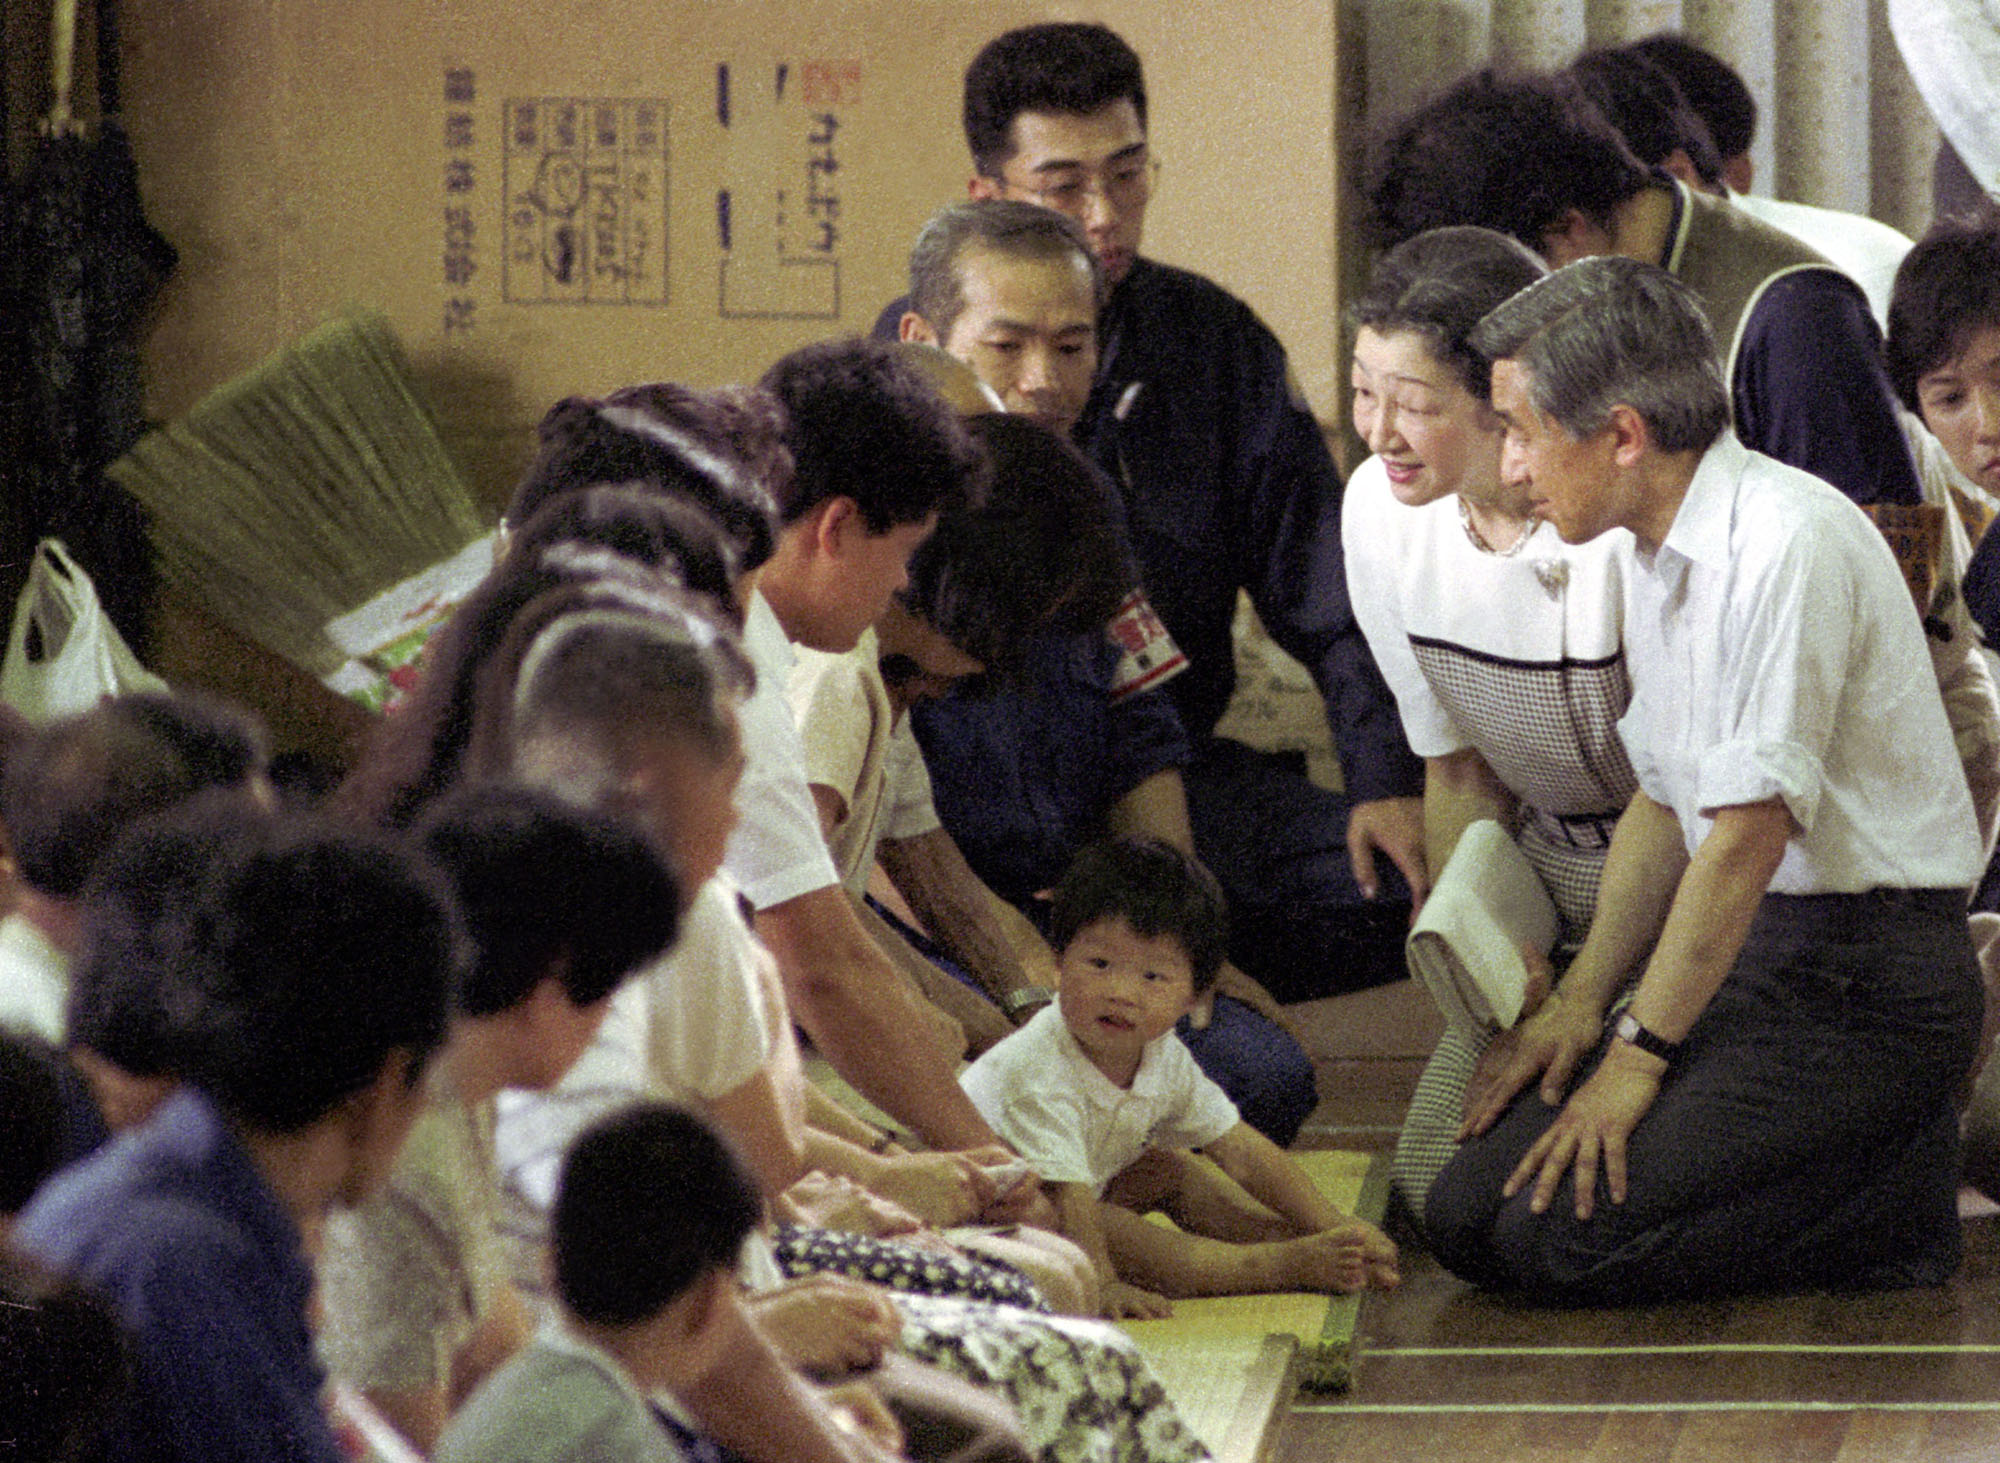 Emperor Akihito and Empress Michiko kneel on the floor to meet with evacuees at a shelter in Shimabara, Nagasaki Prefecture, in July 1991 after the eruption of Mount Unzen. | KYODO